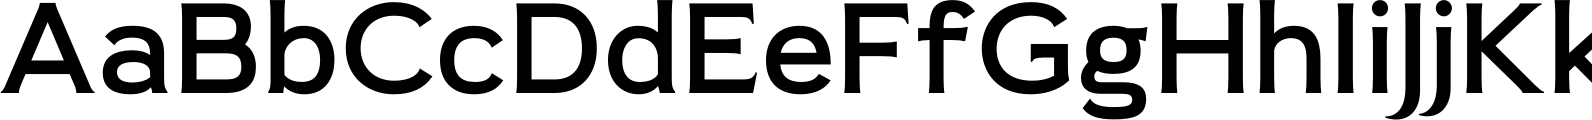 Pseudonym Wide Medium Font